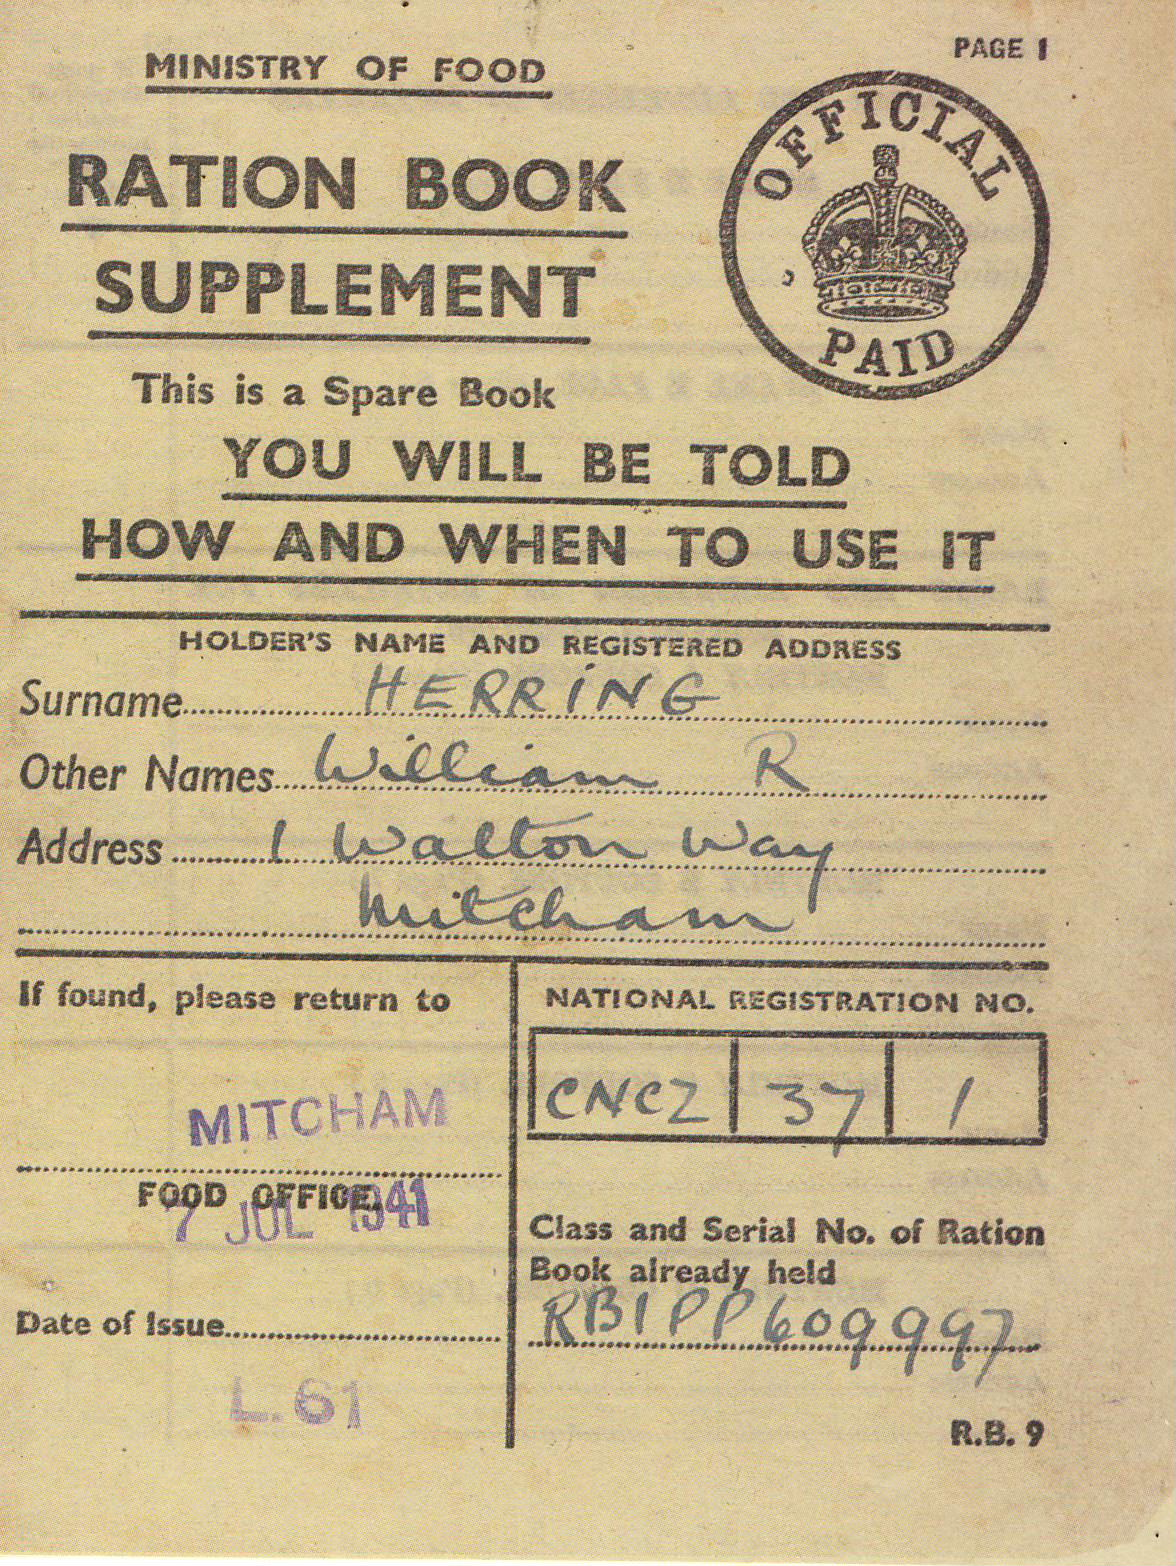 WW2 Ration Book Supplement spare book Ministry of Food publication measures approx 10cm x 13cm ref101635 Stapled pre-owned in good clean read condition.